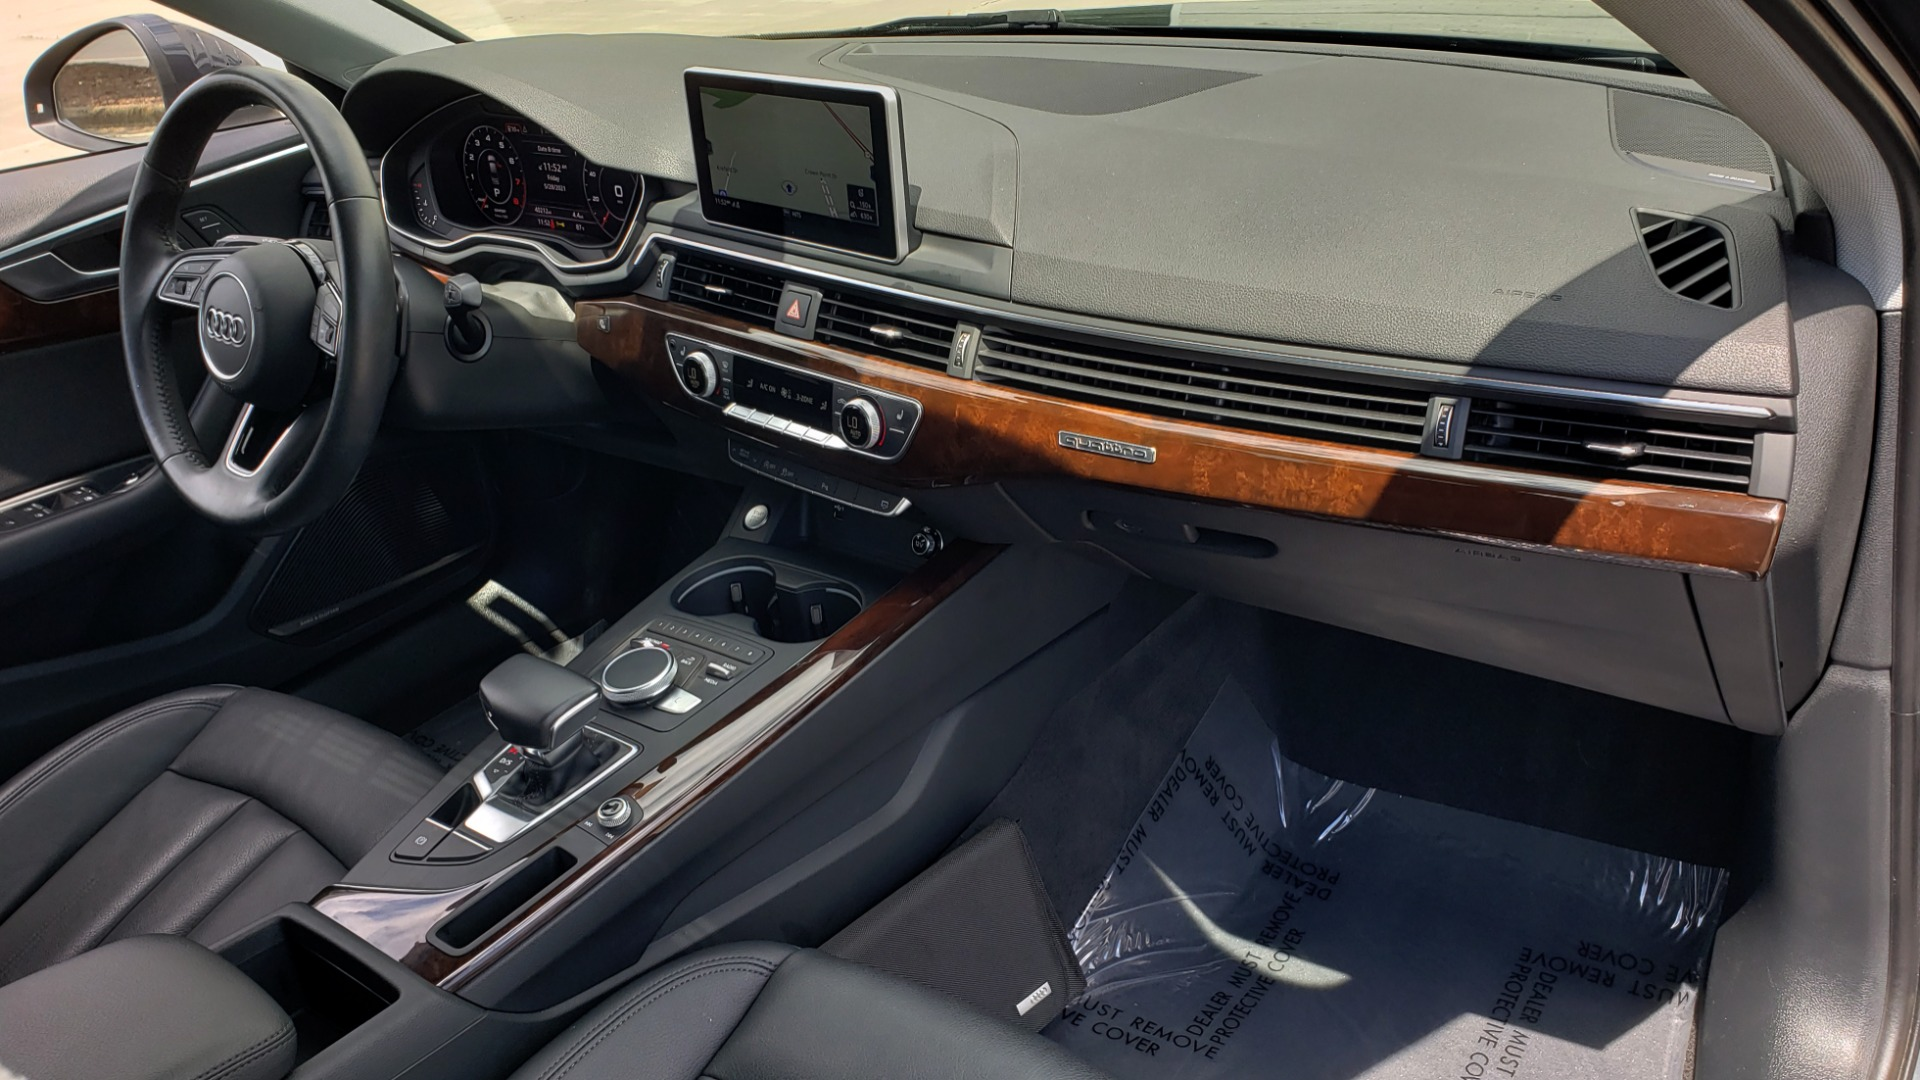 Used 2018 Audi A4 TECH PREMIUM PLUS / NAV / B&O SND / SUNROOF / CLD WTHR / REARVIEW for sale $28,595 at Formula Imports in Charlotte NC 28227 69